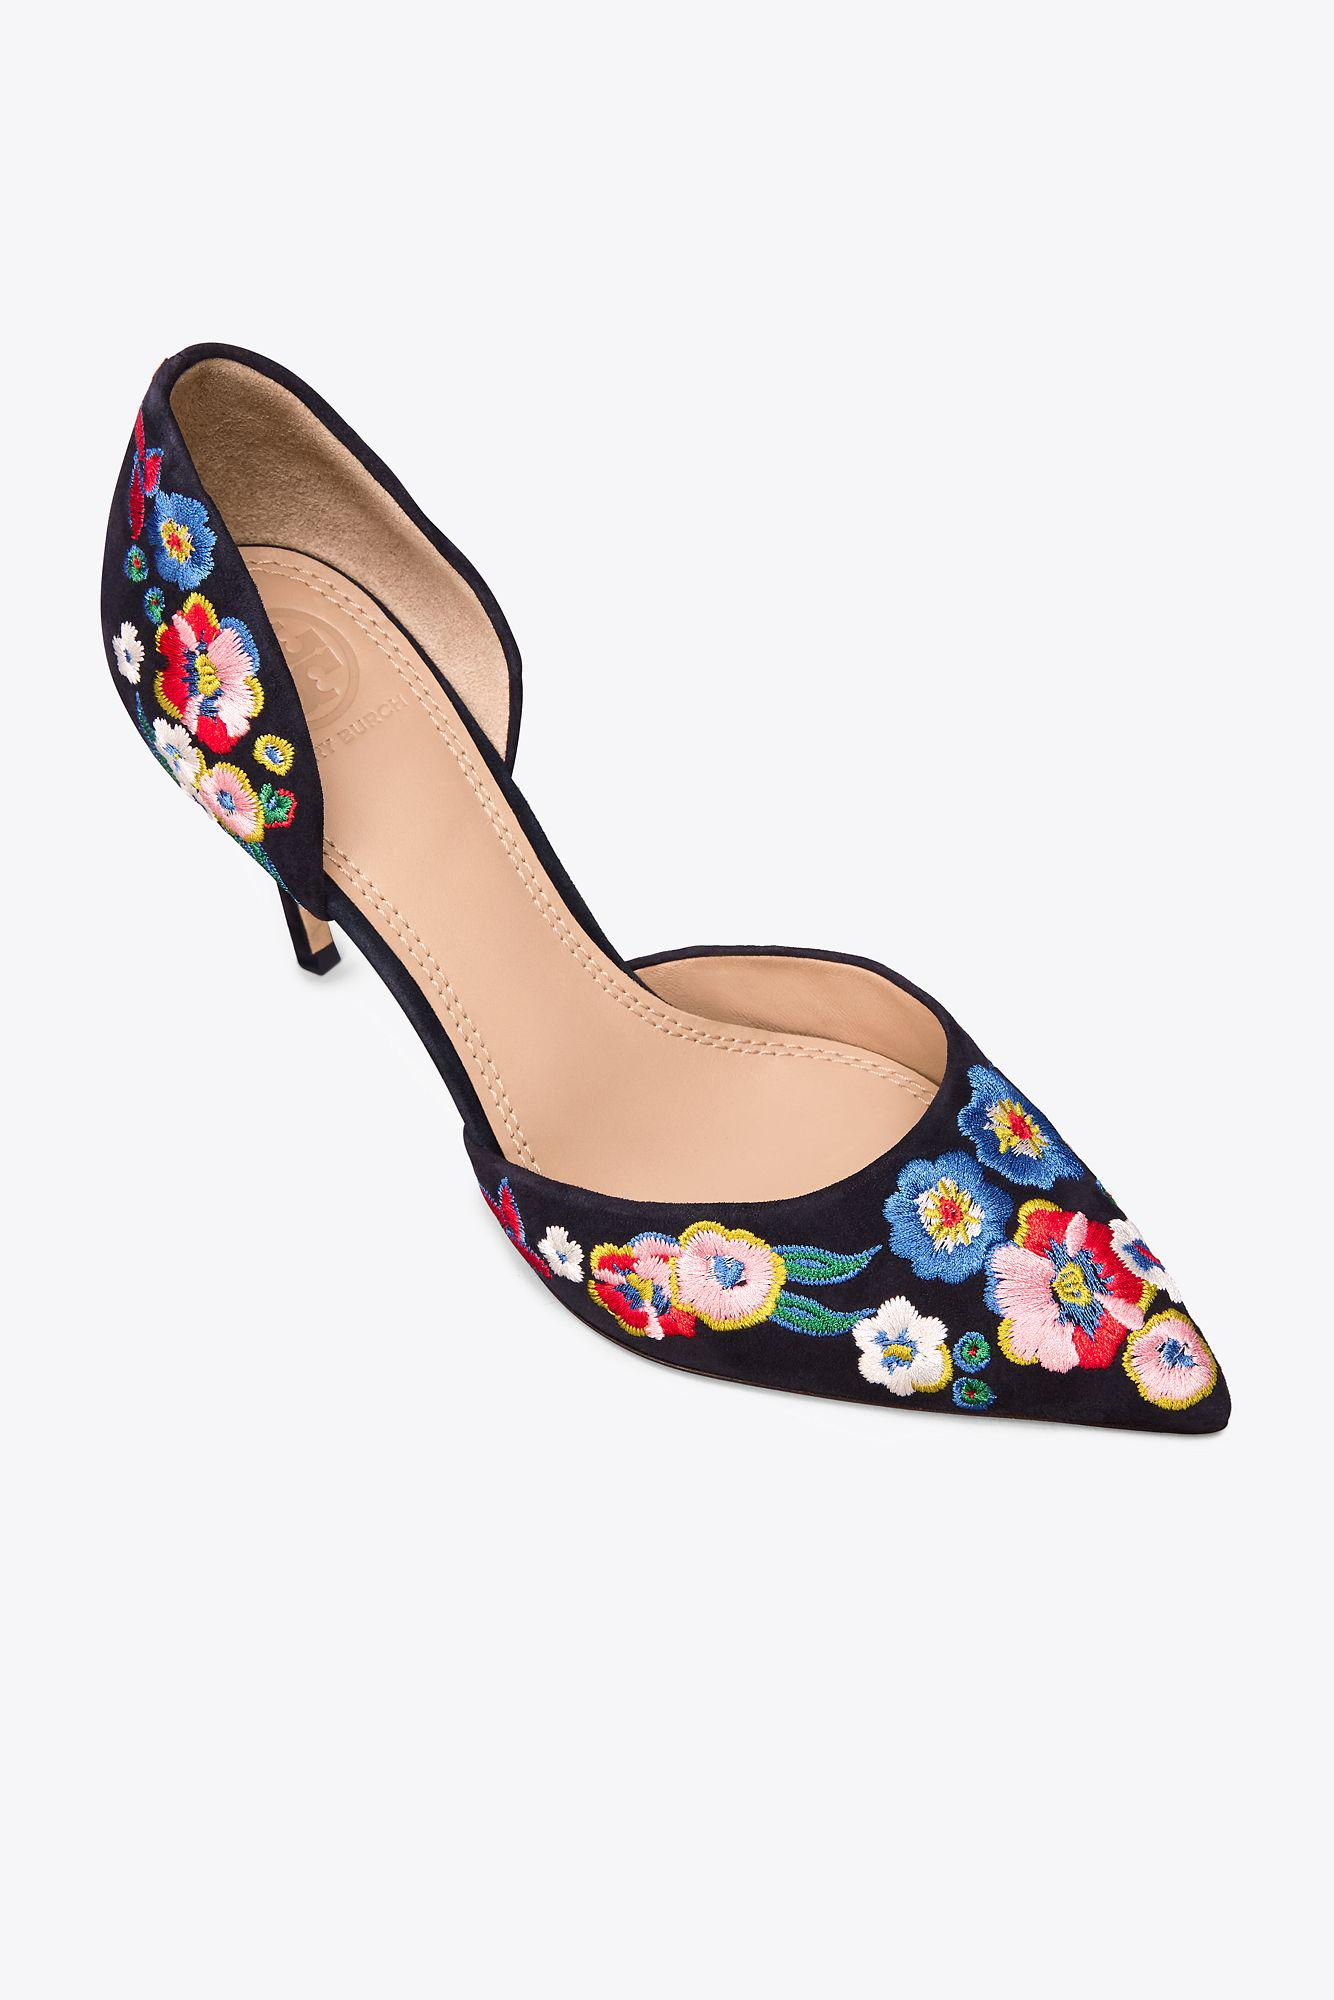 6706cebff075 Lyst - Tory Burch Rosemont Embroidered D orsay High-heel Pumps in Blue